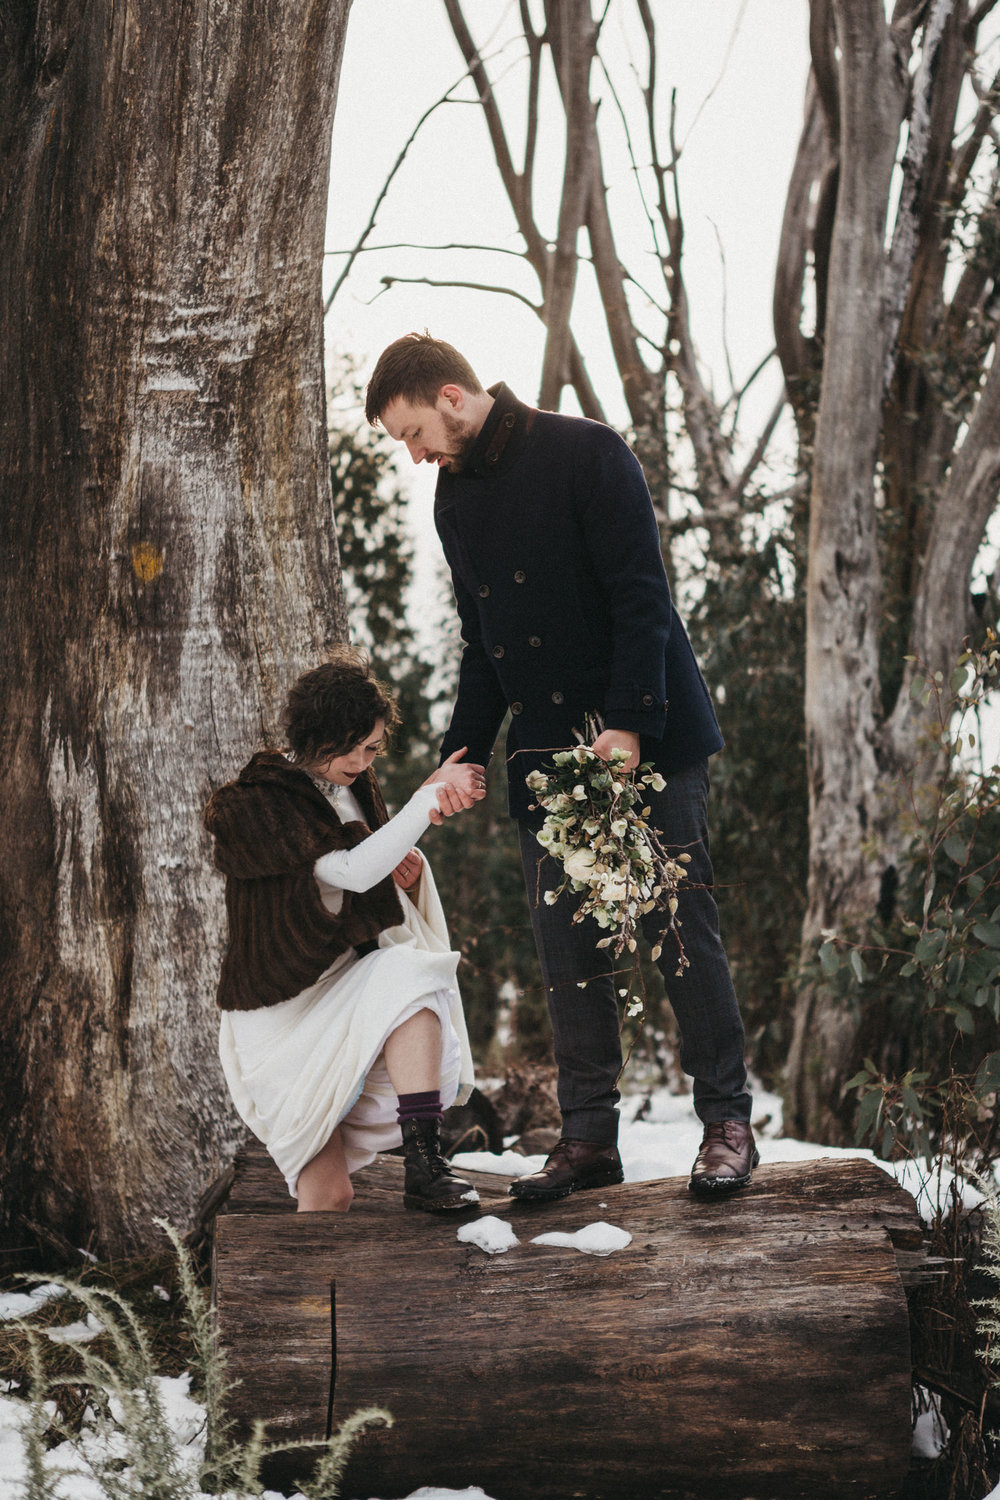 Winter_Elopement_Amie_Nick_Anna_Taylor_194-766A1888.jpg